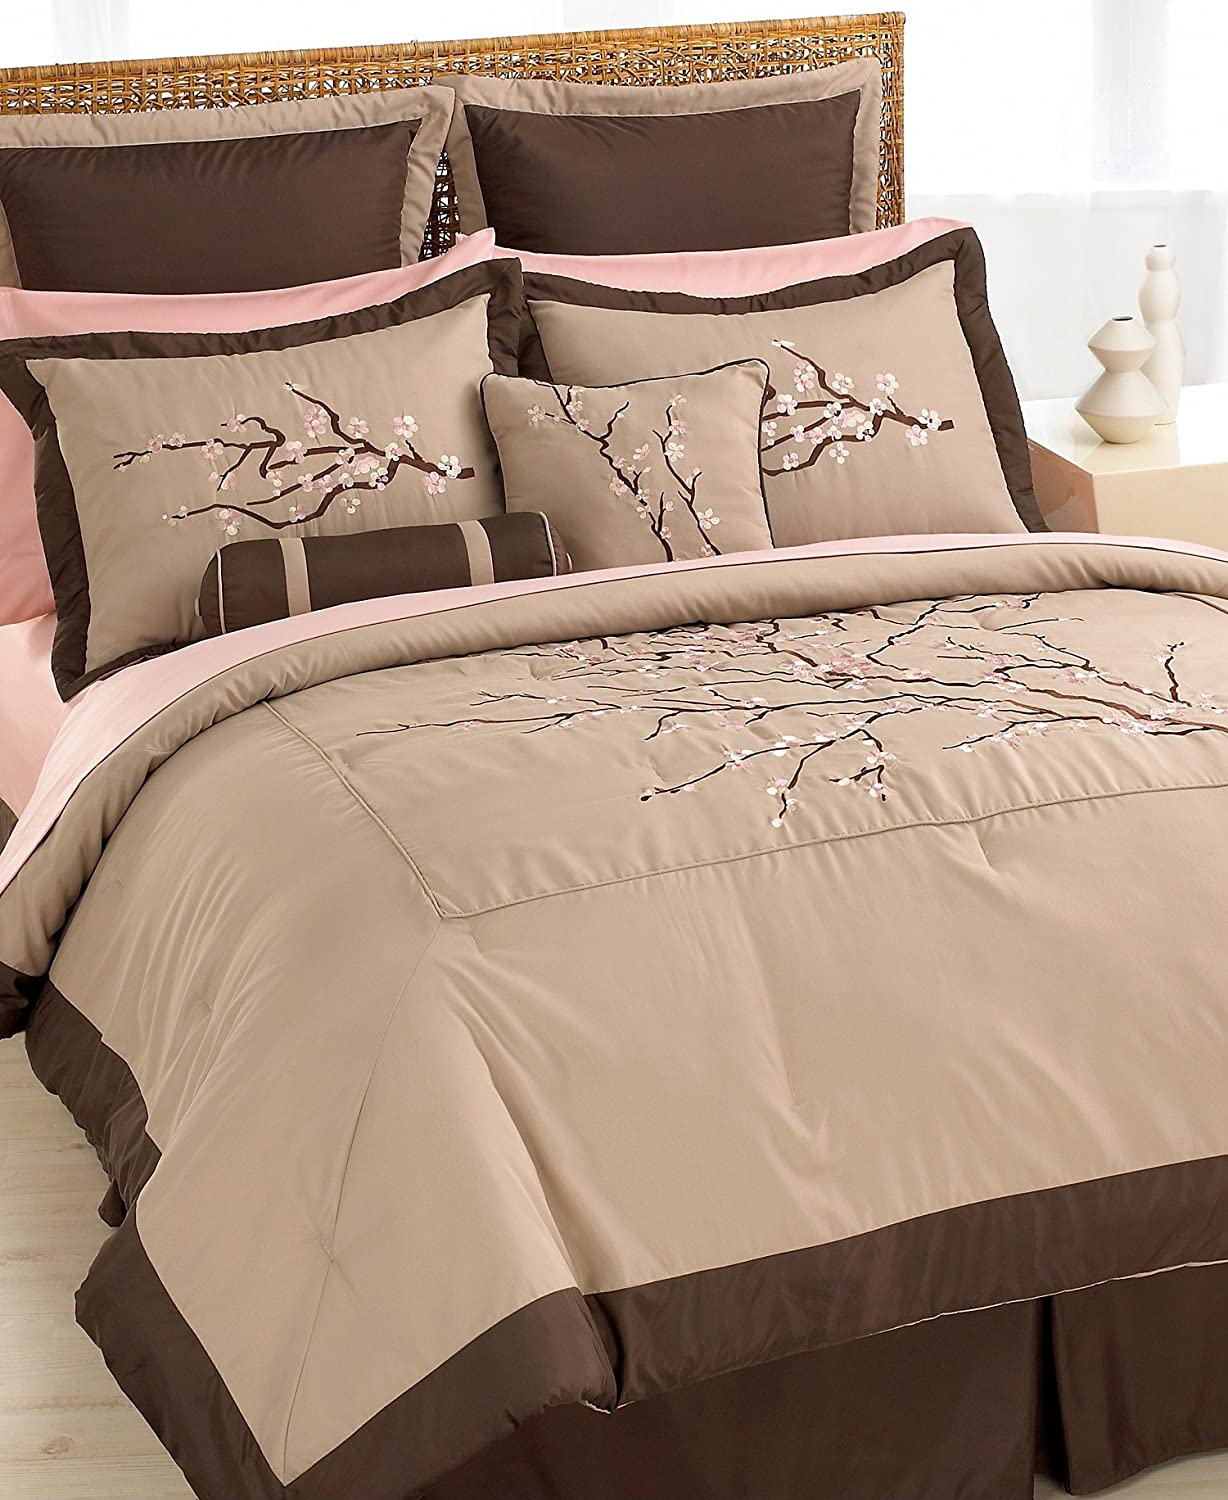 Super Cherry Blossom Bedding Sets DR77